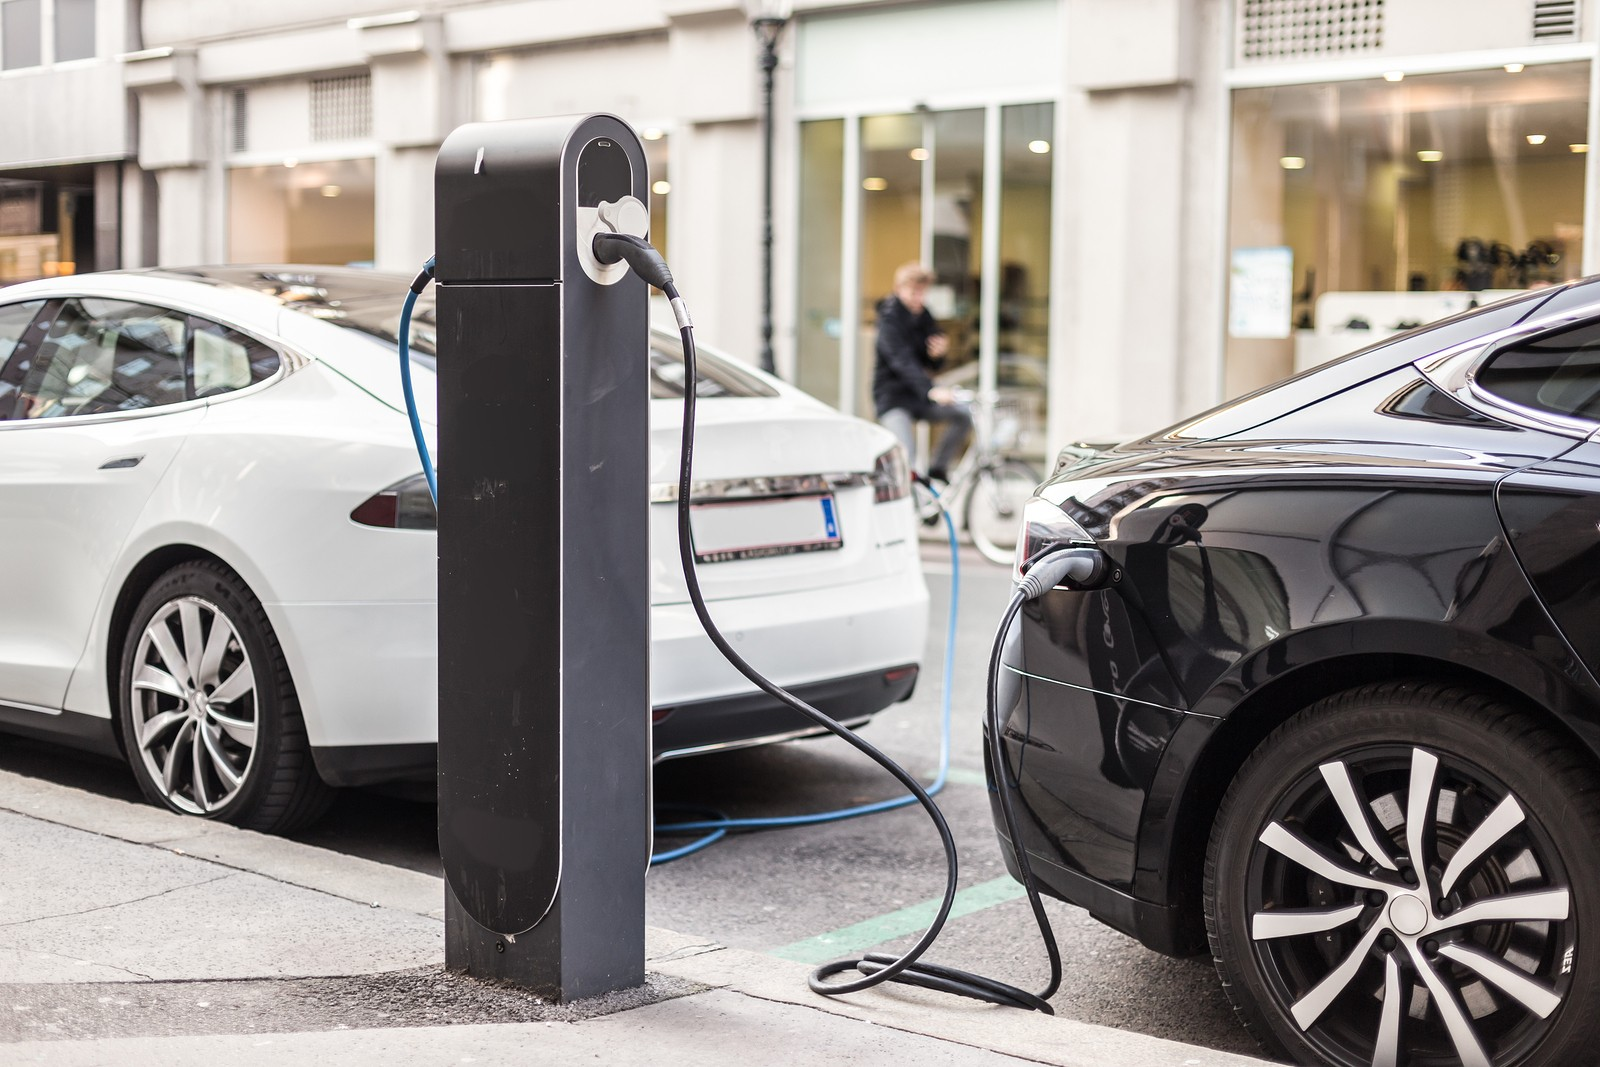 Buying An Electric Vehicle: How To Save Money And Stay Healthy